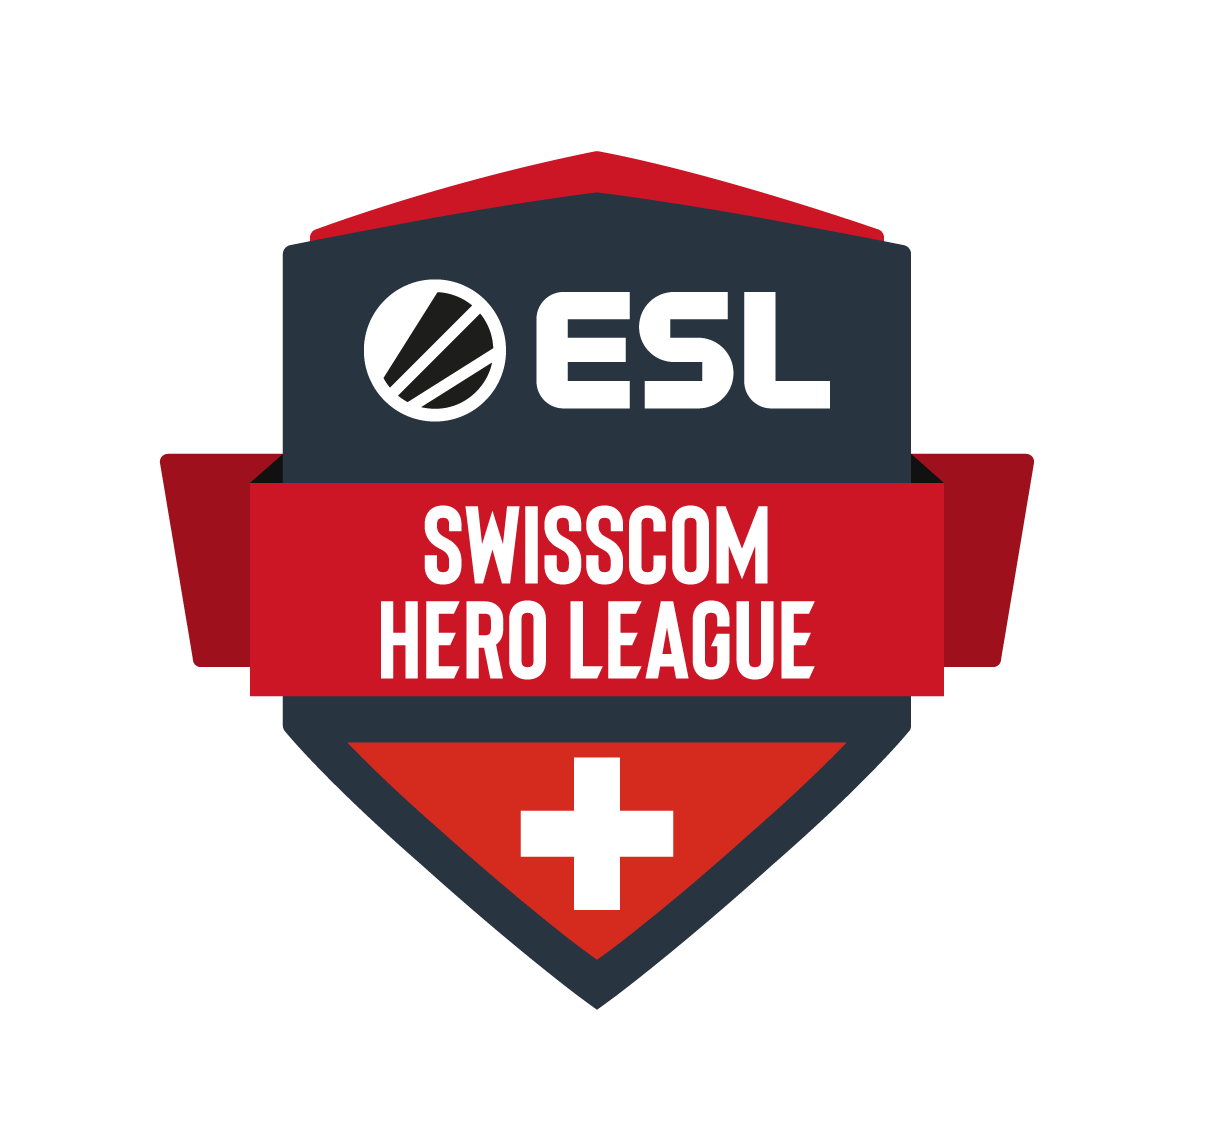 Swisscom Hero League powered by ESL